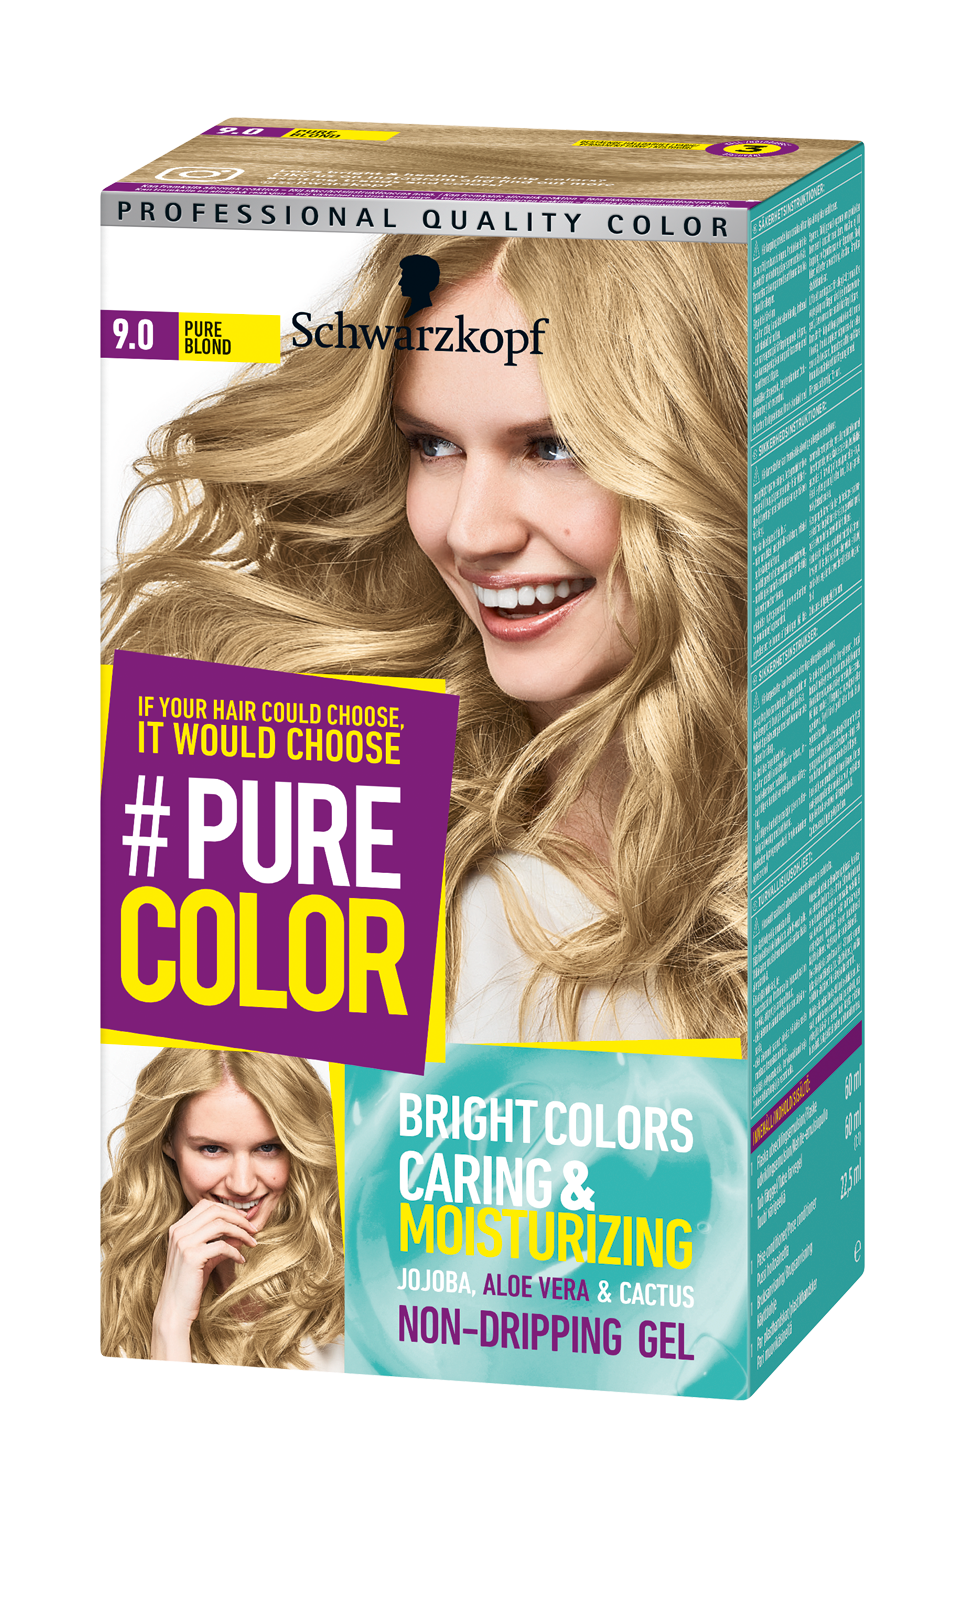 Pure-color-9-0-pure-blond